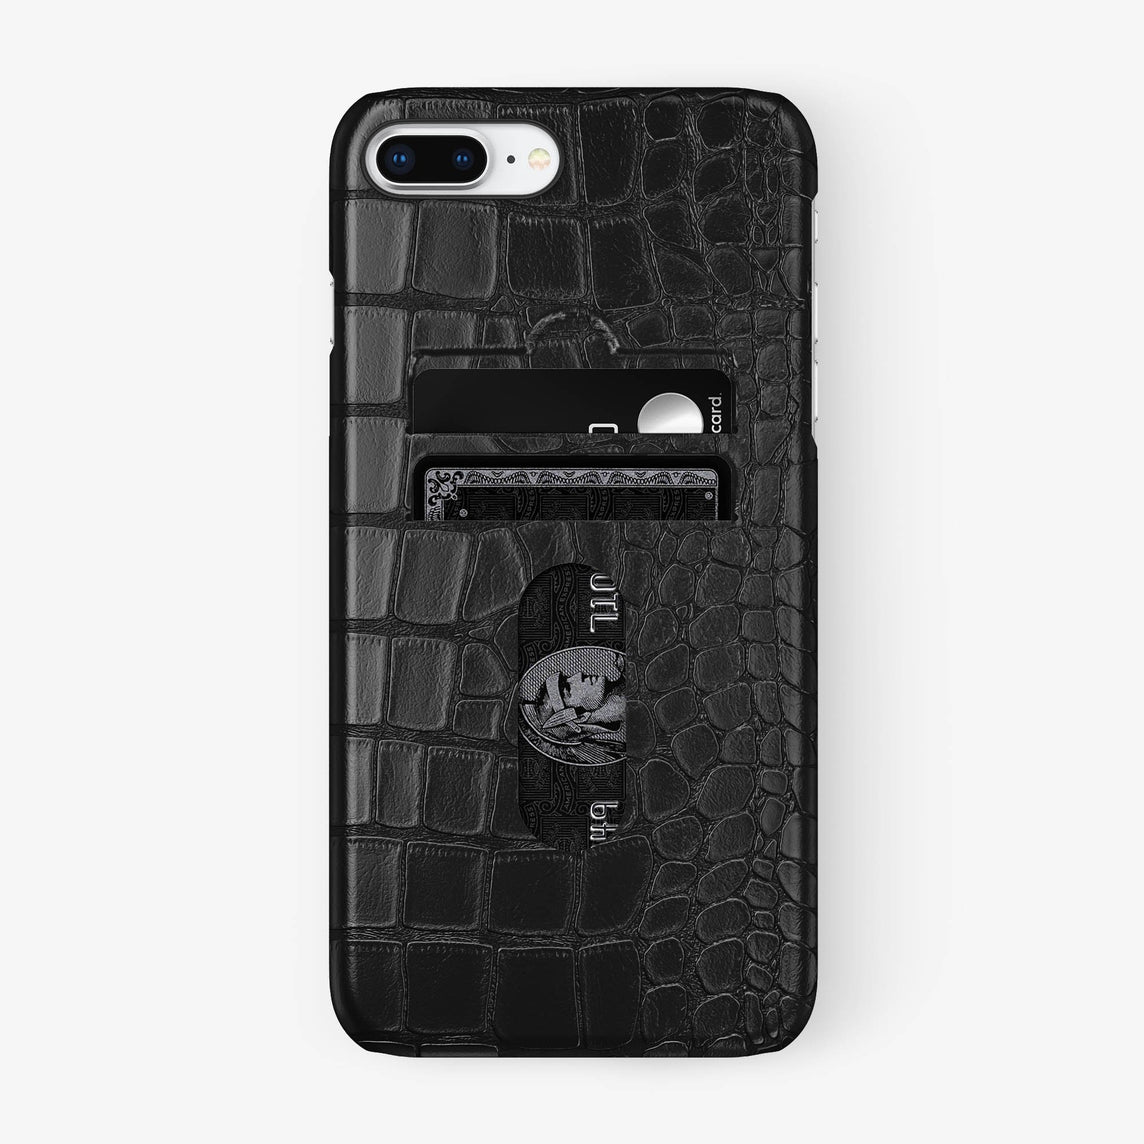 Alligator Card Holder Case iPhone 7/8 Plus | Black - Black